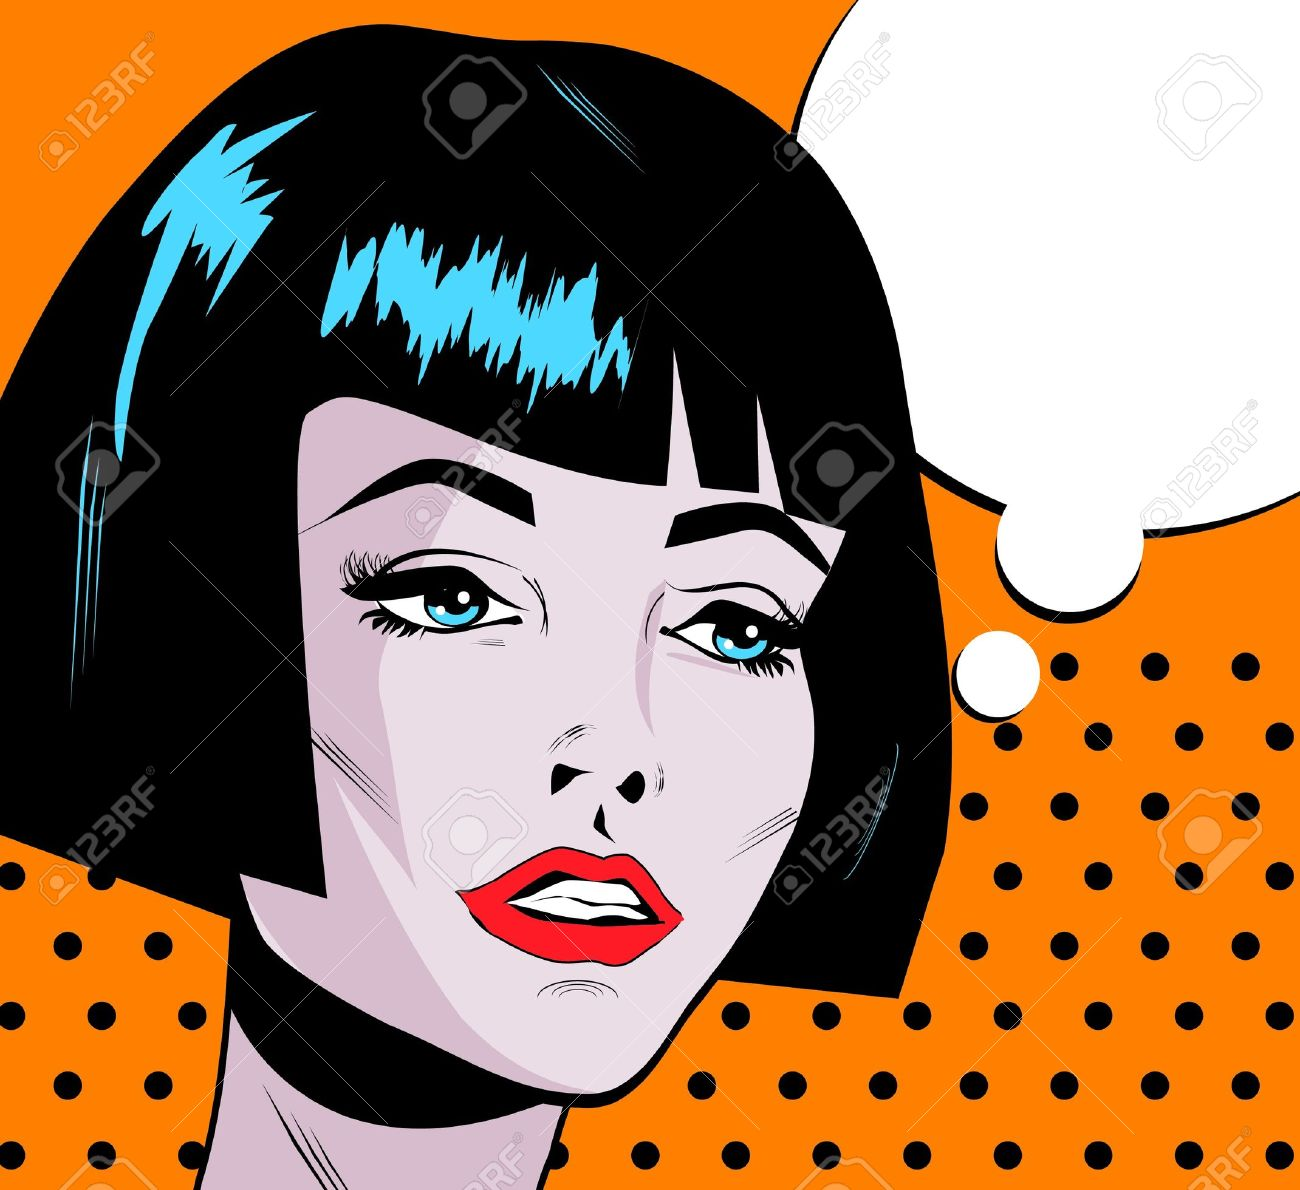 Pop Art Woman Say Beauty Fashion face with red lips and dark hair cut Stock Vector - 15770326